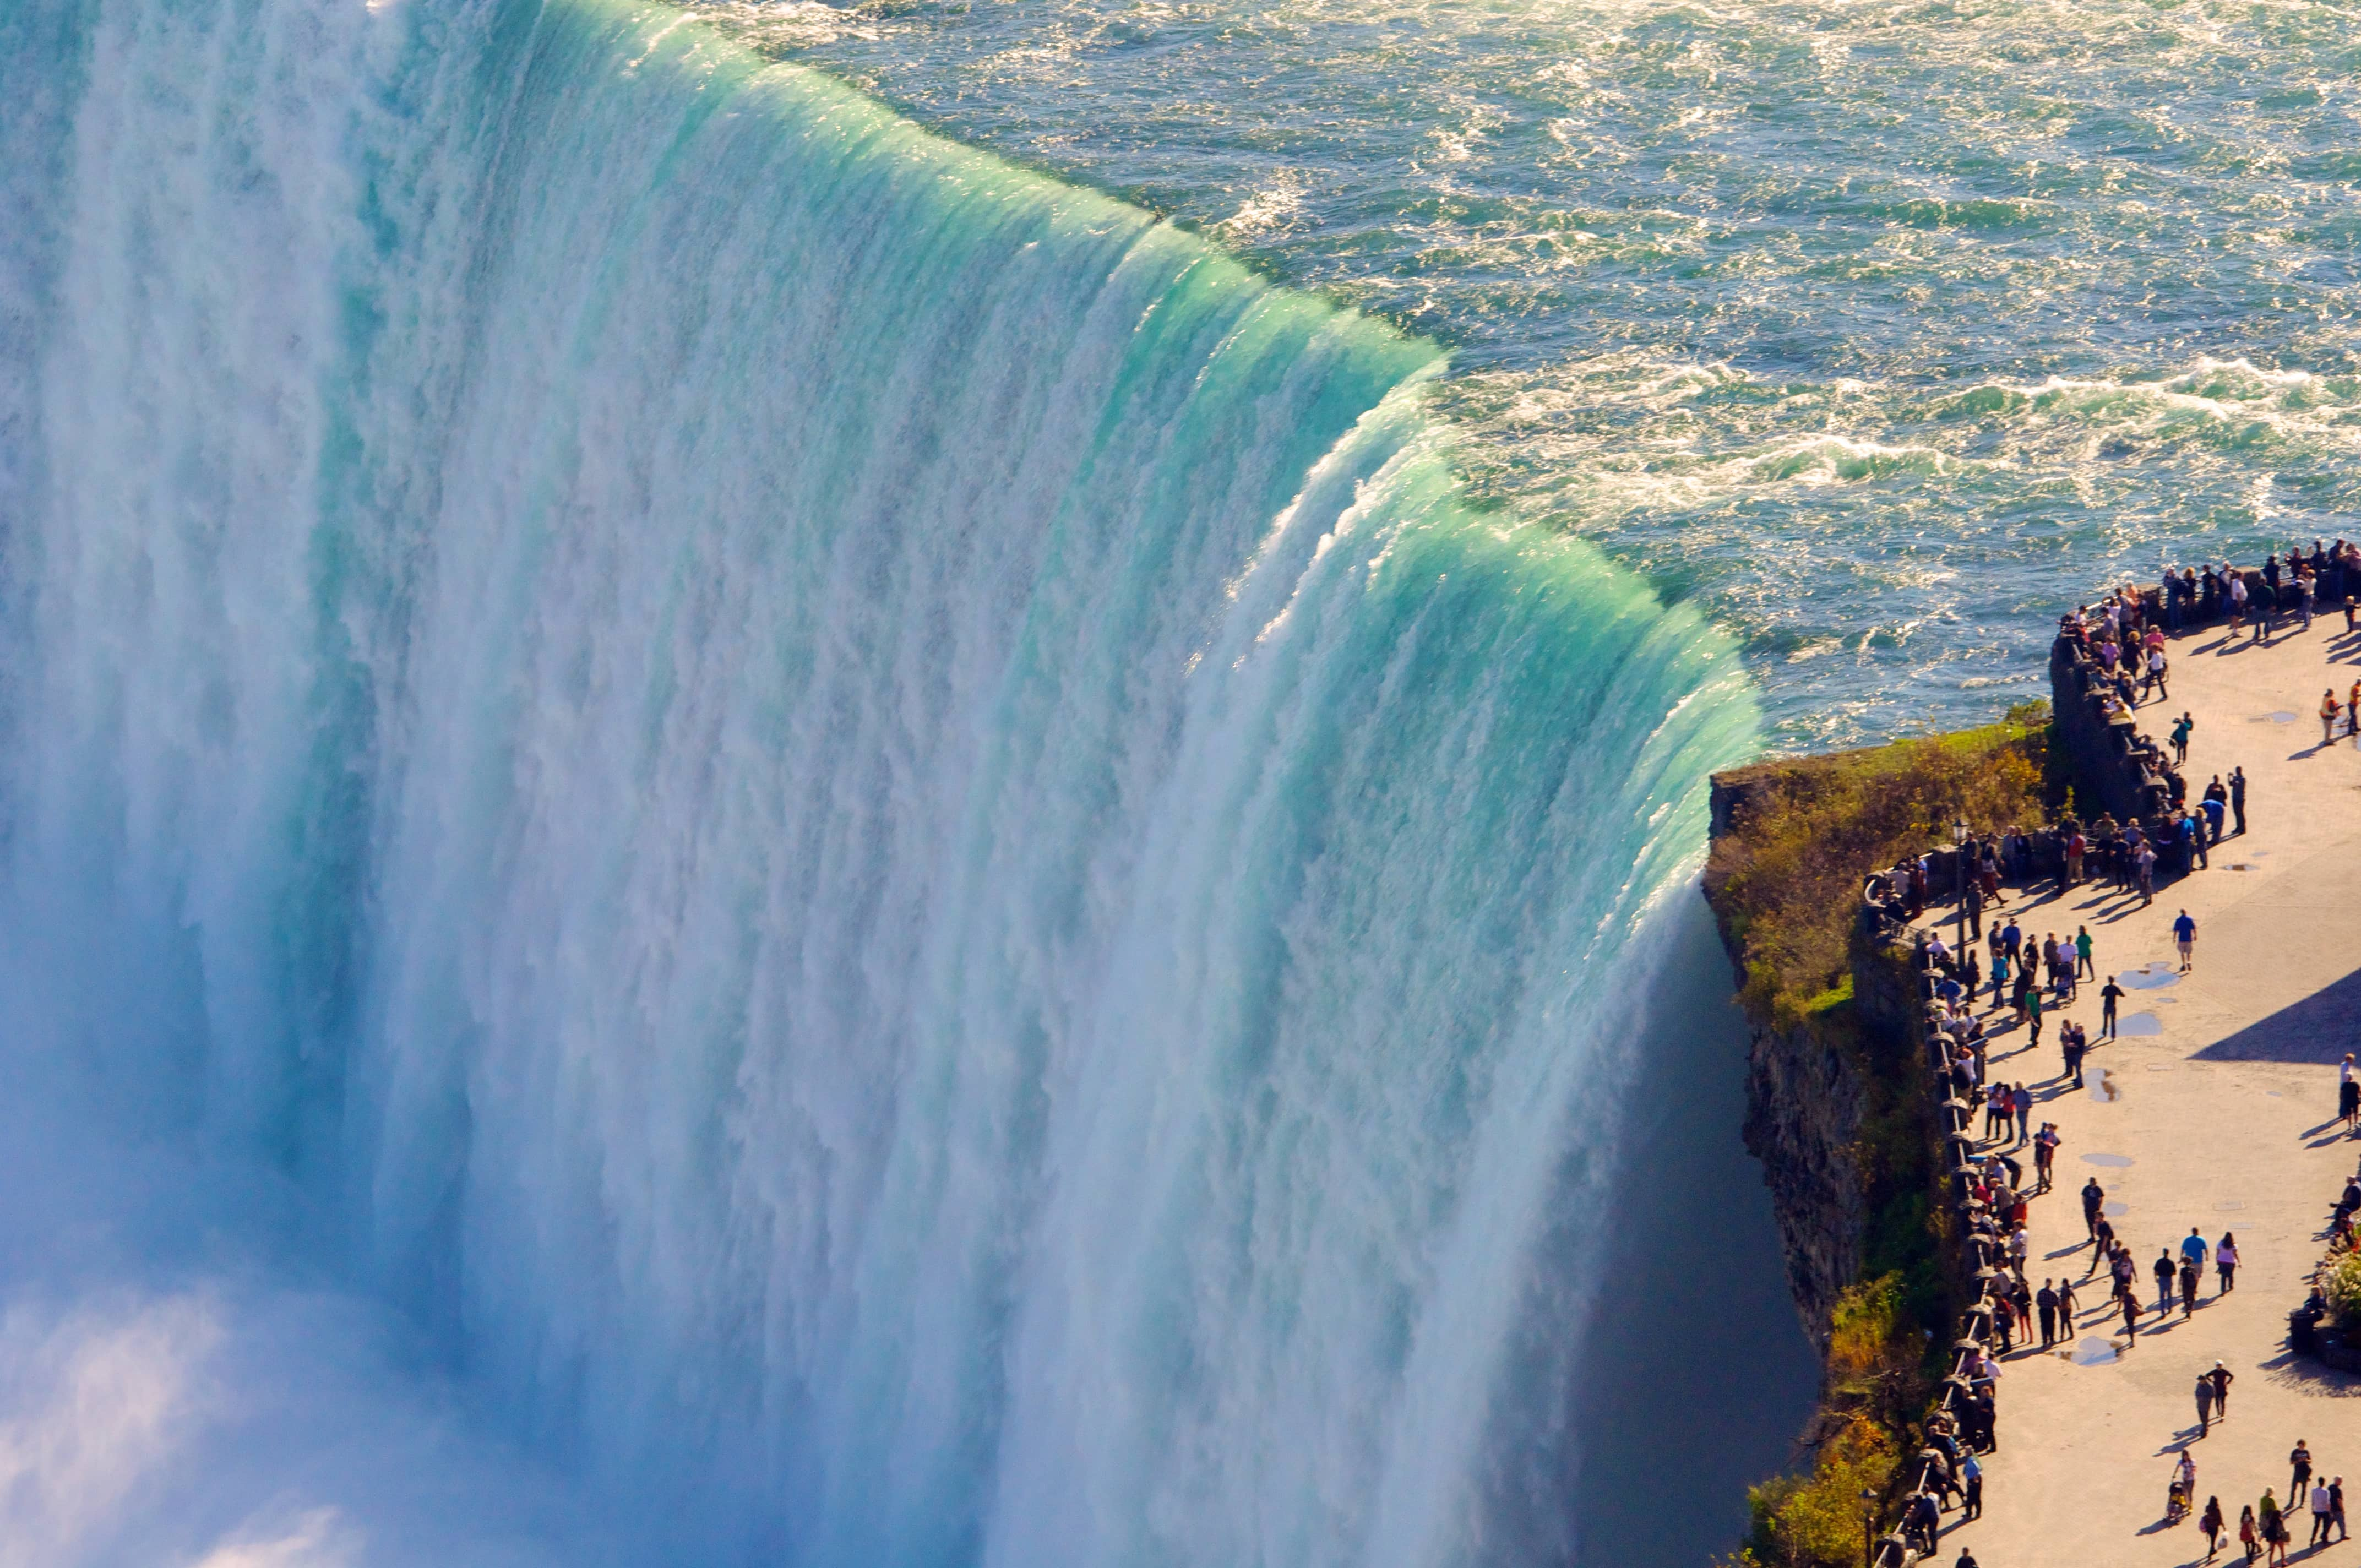 Areial view of Horseshoe Falls at Niagara Falls